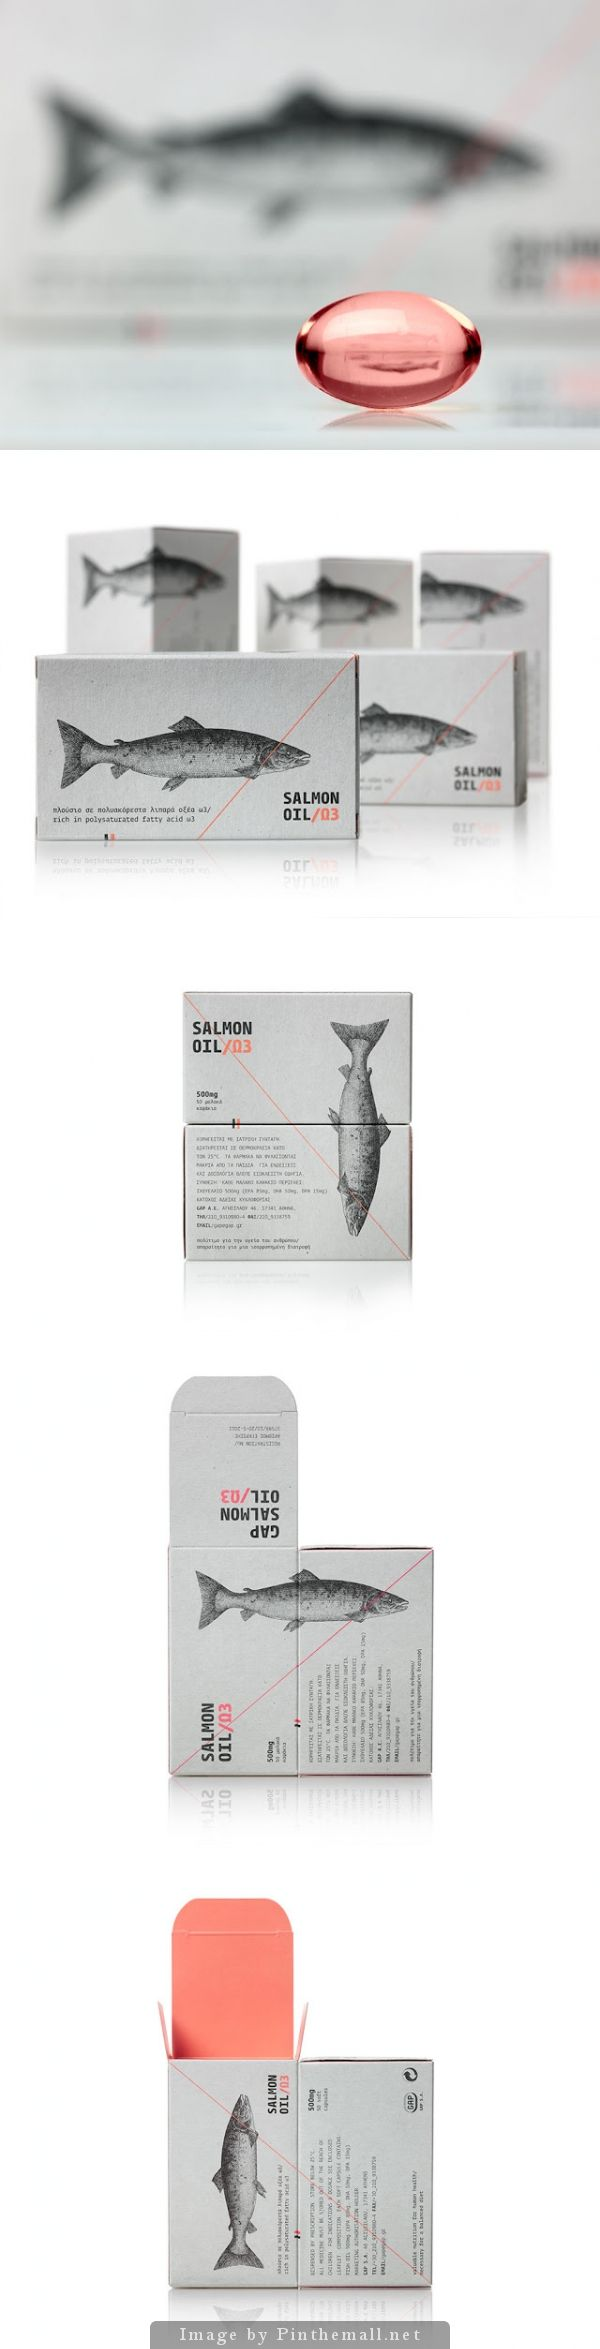 Salmon Oil Agency: mousegraphics Type of work: Commercial work Country: Greece PD